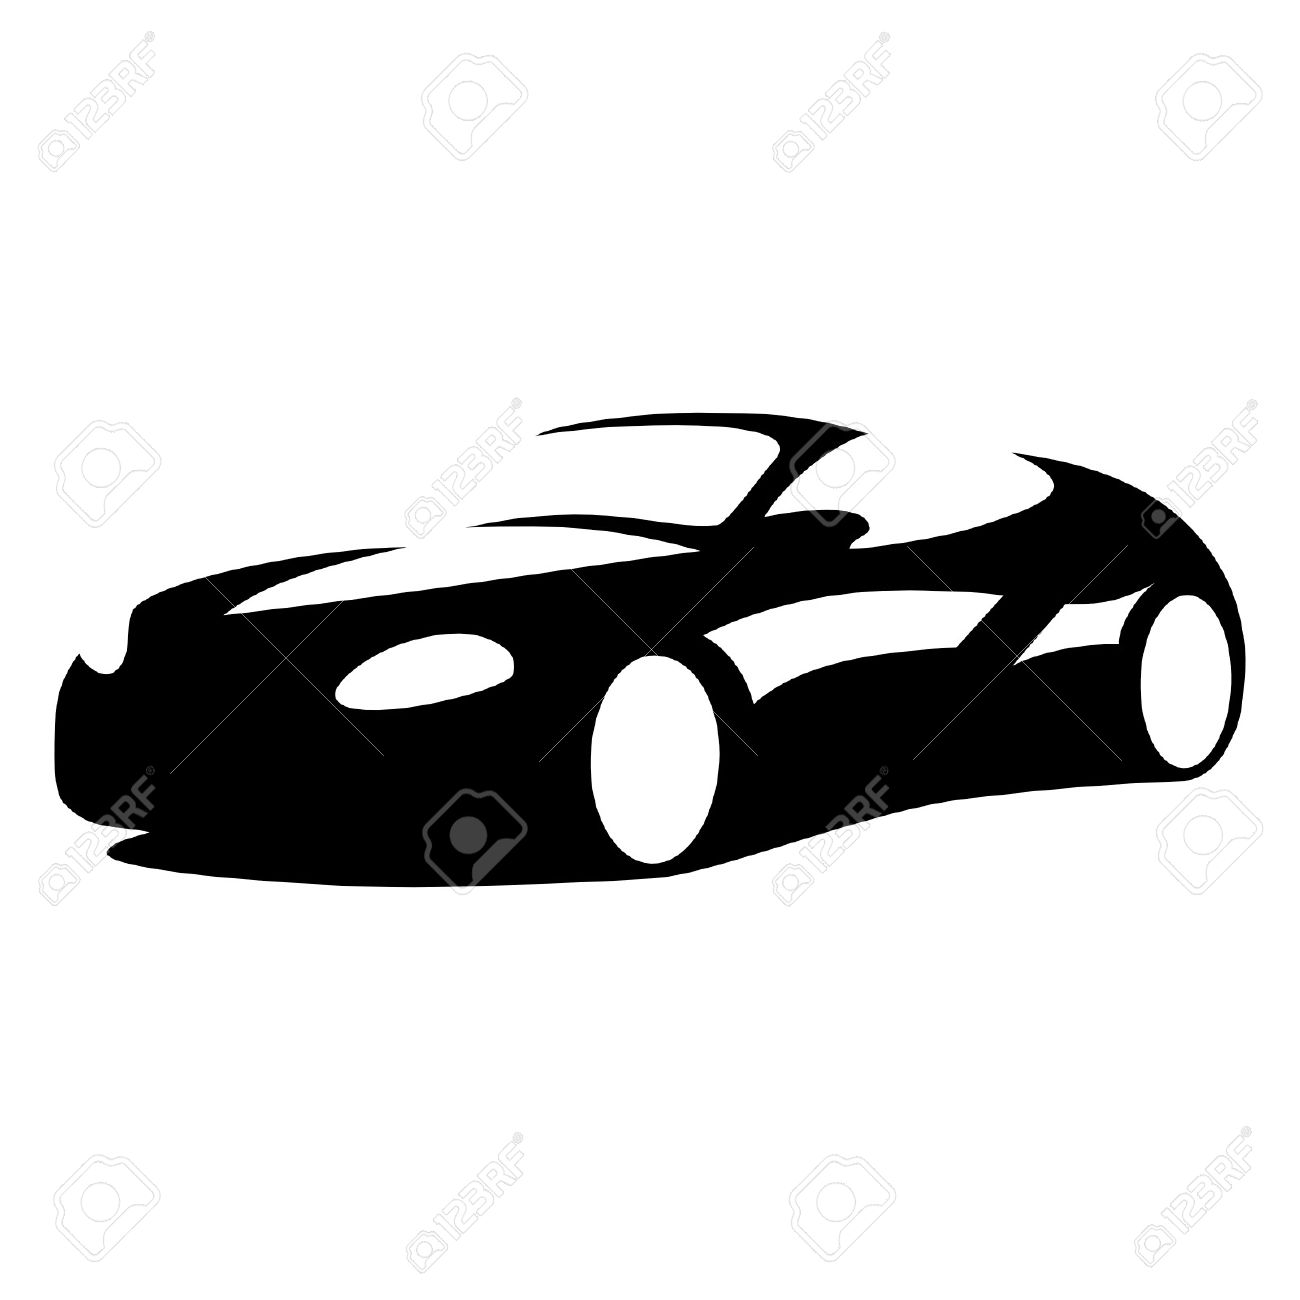 Sports Car Silhouette Royalty Free Cliparts Vectors And Stock